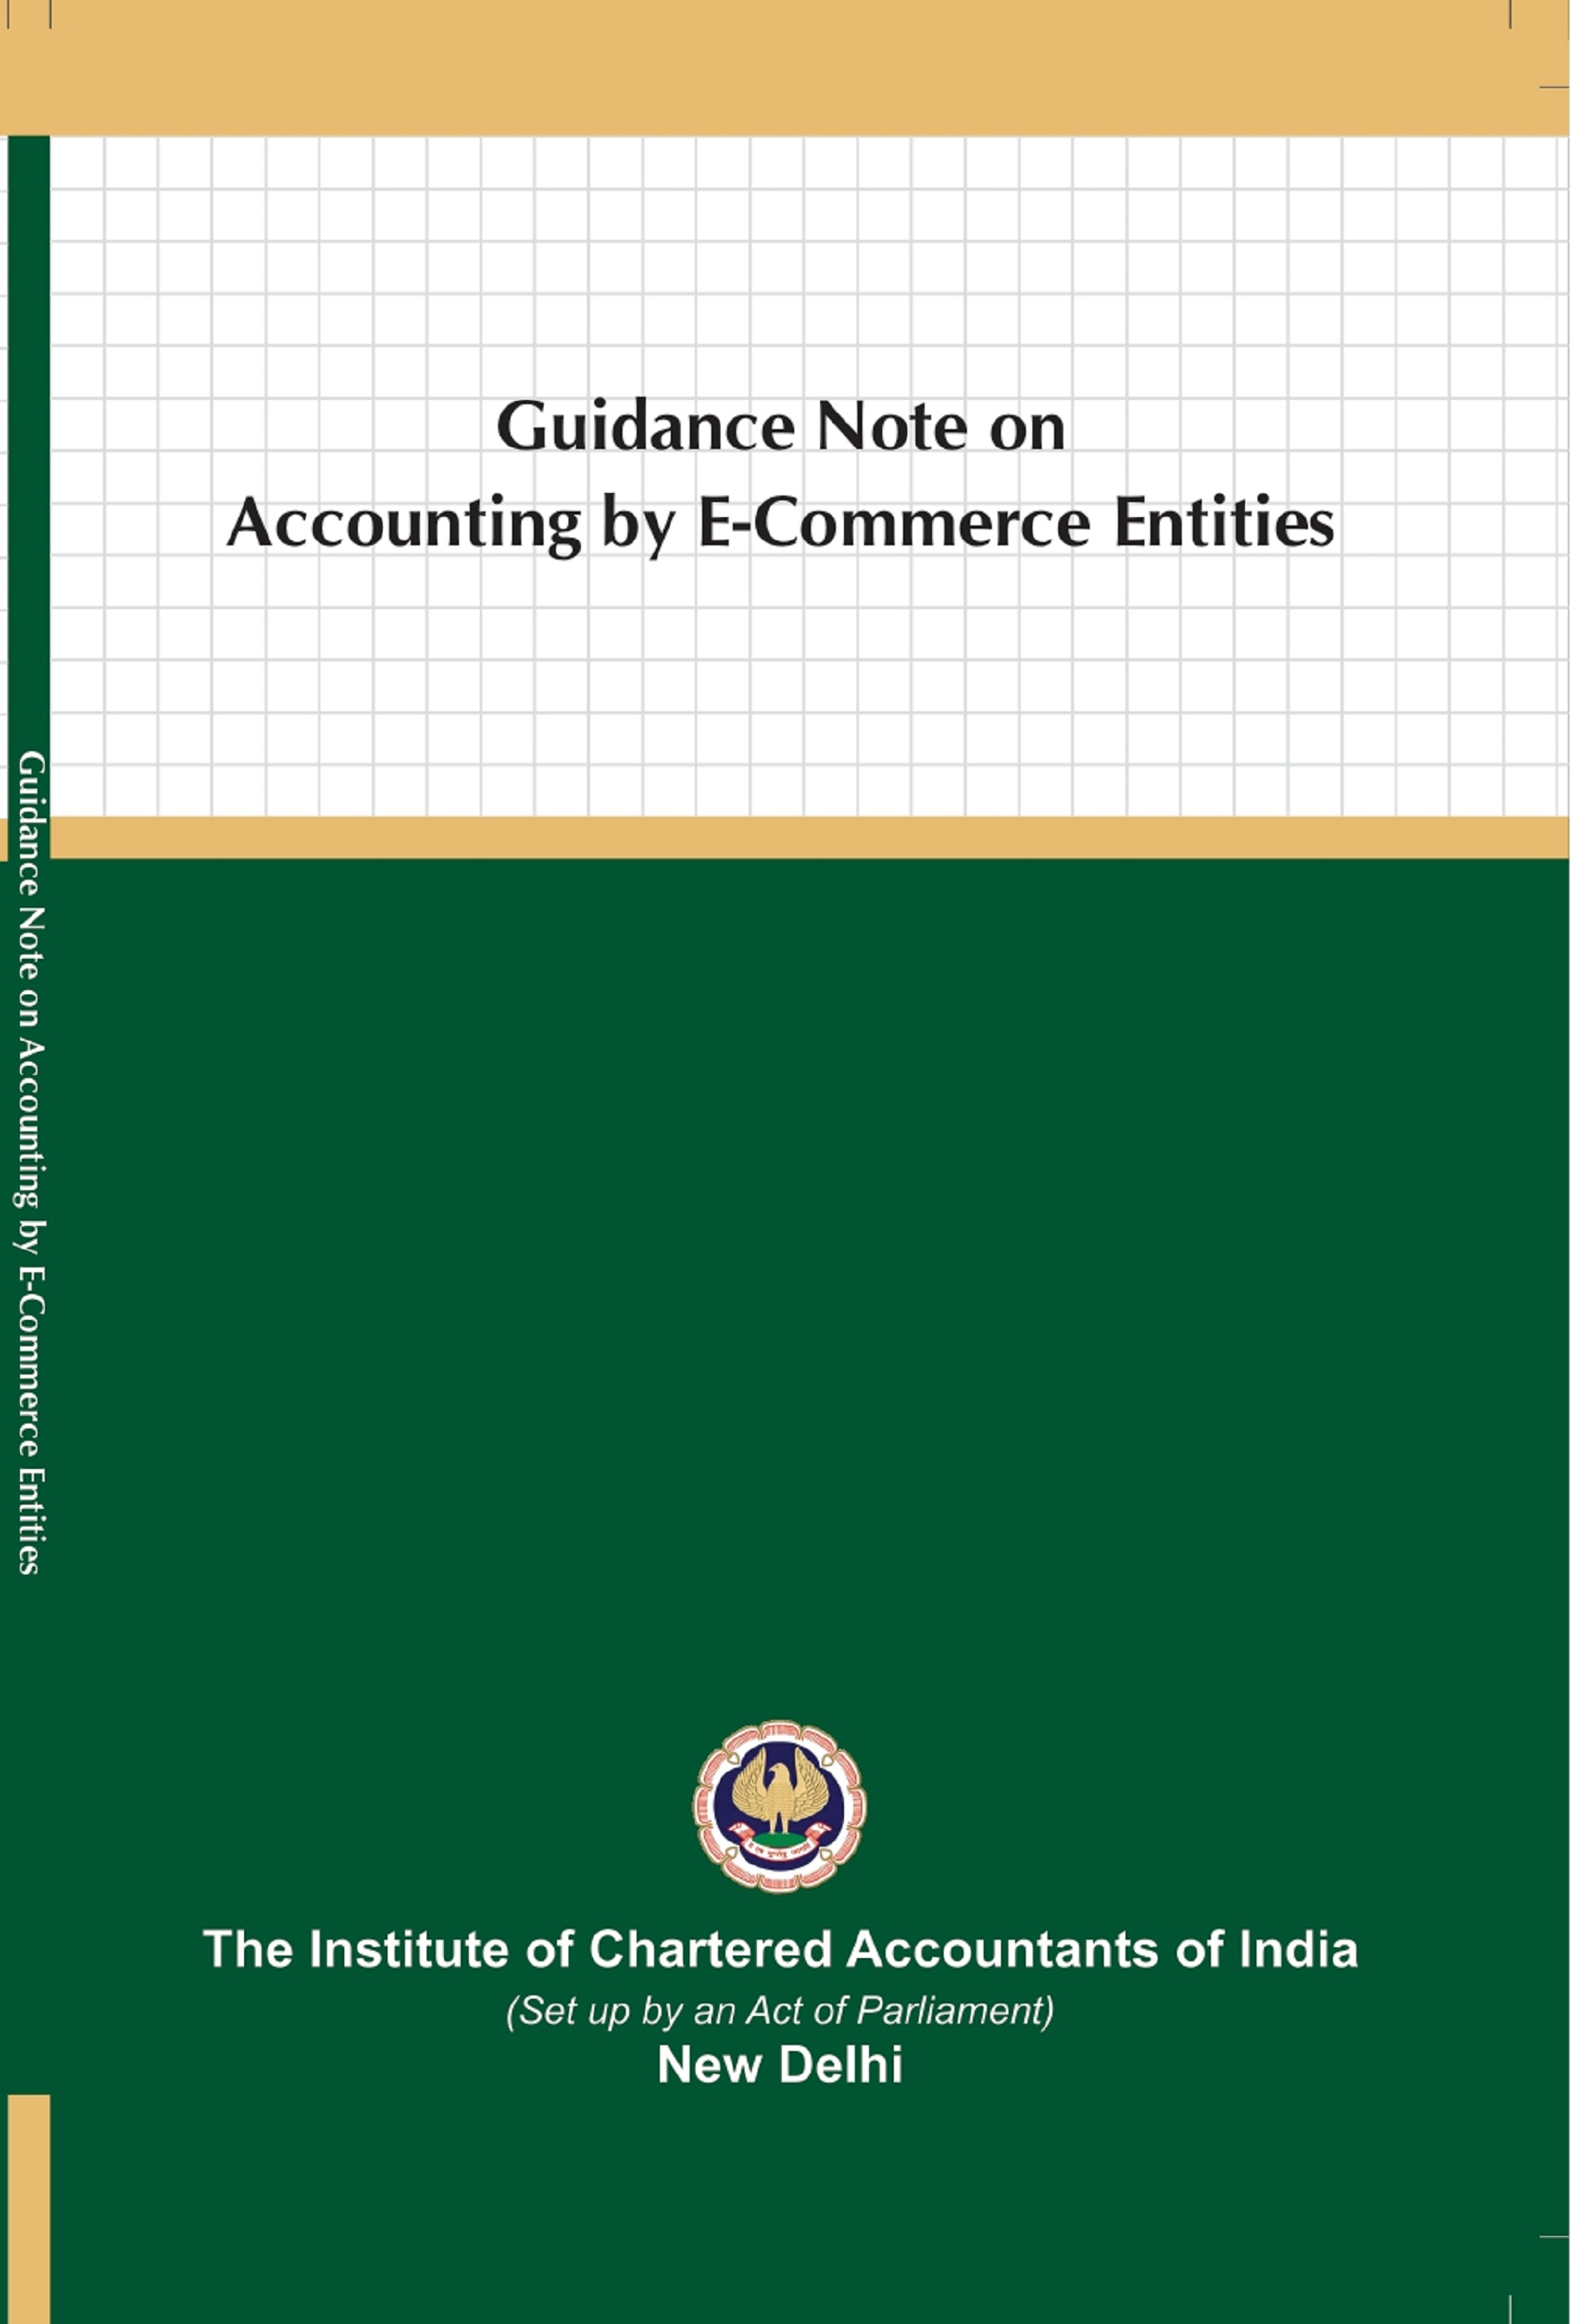 Guidance Note on Accounting by E-Commerce Entities (January, 2021)